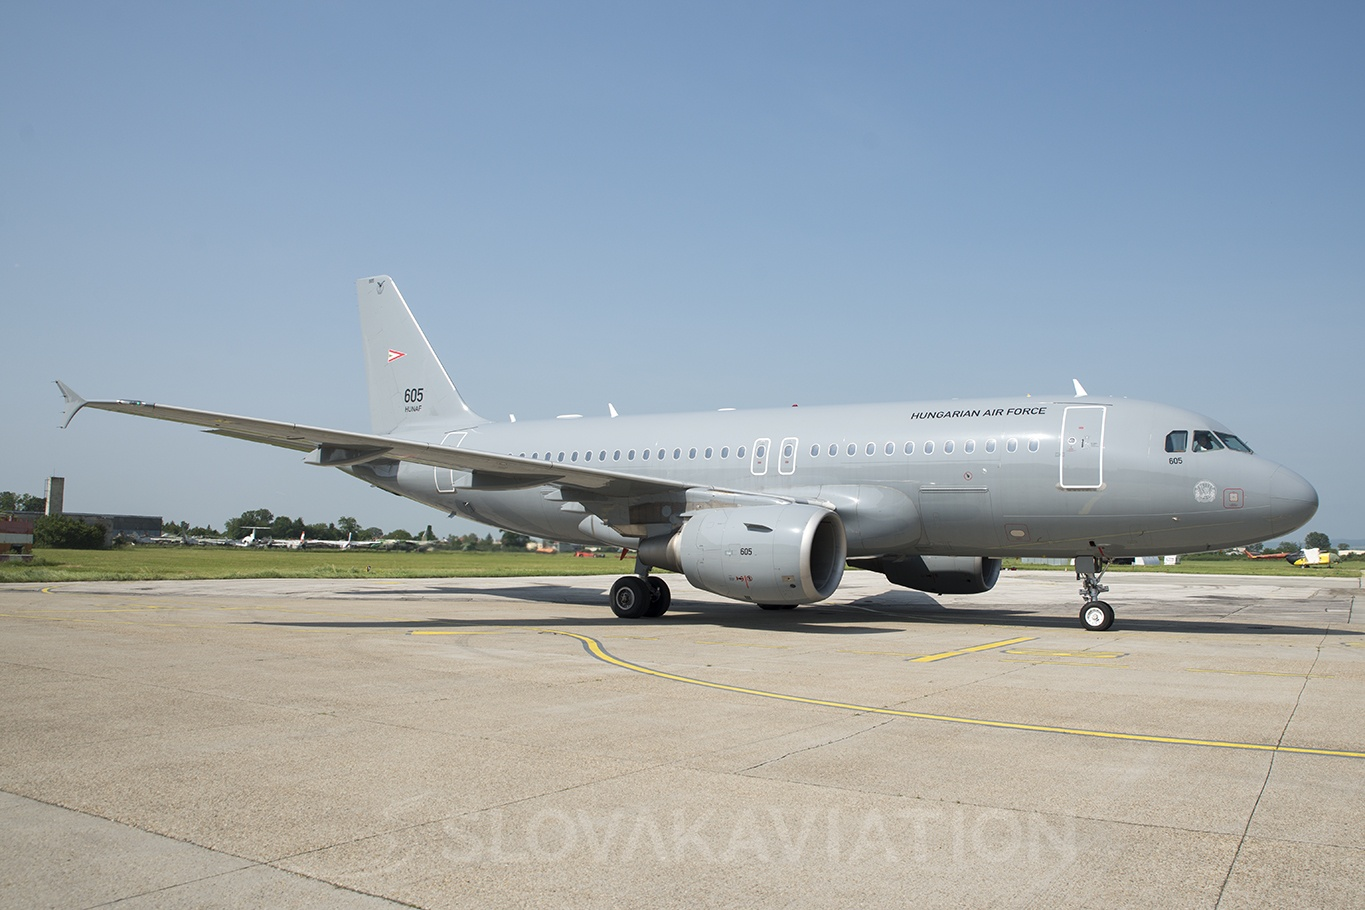 Hungary - Air Force Airbus A319 605